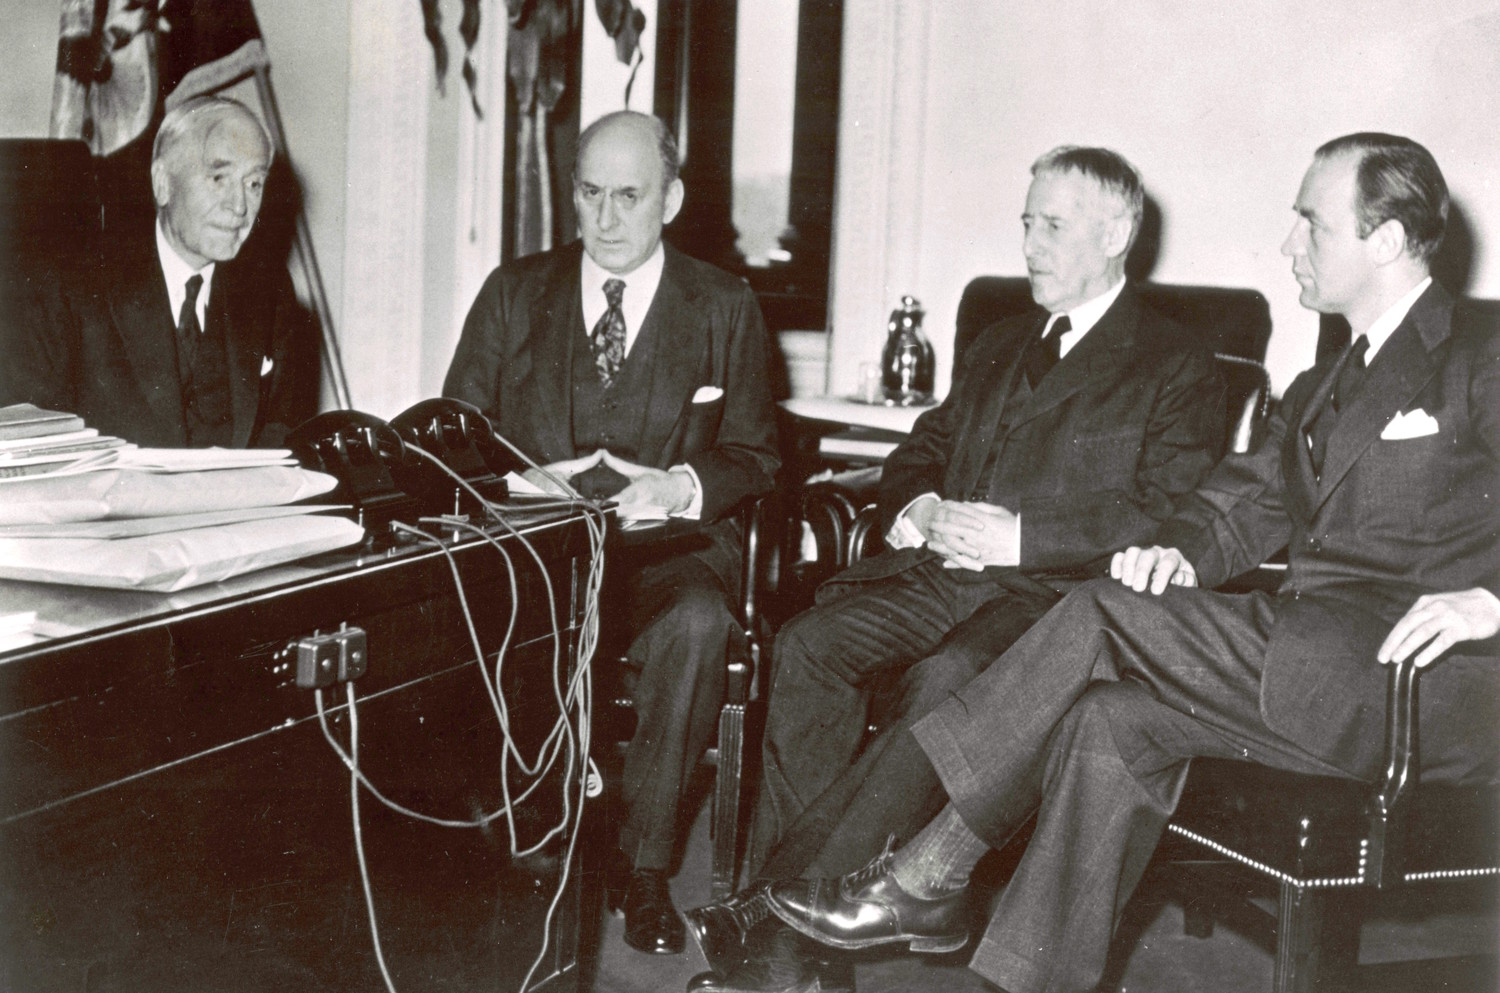 A meeting of the War Refugee Board in March 1944. From left: Secretary of State Cordell Hull, Henry Morgenthau, Henry Stimson, and John Pehle.